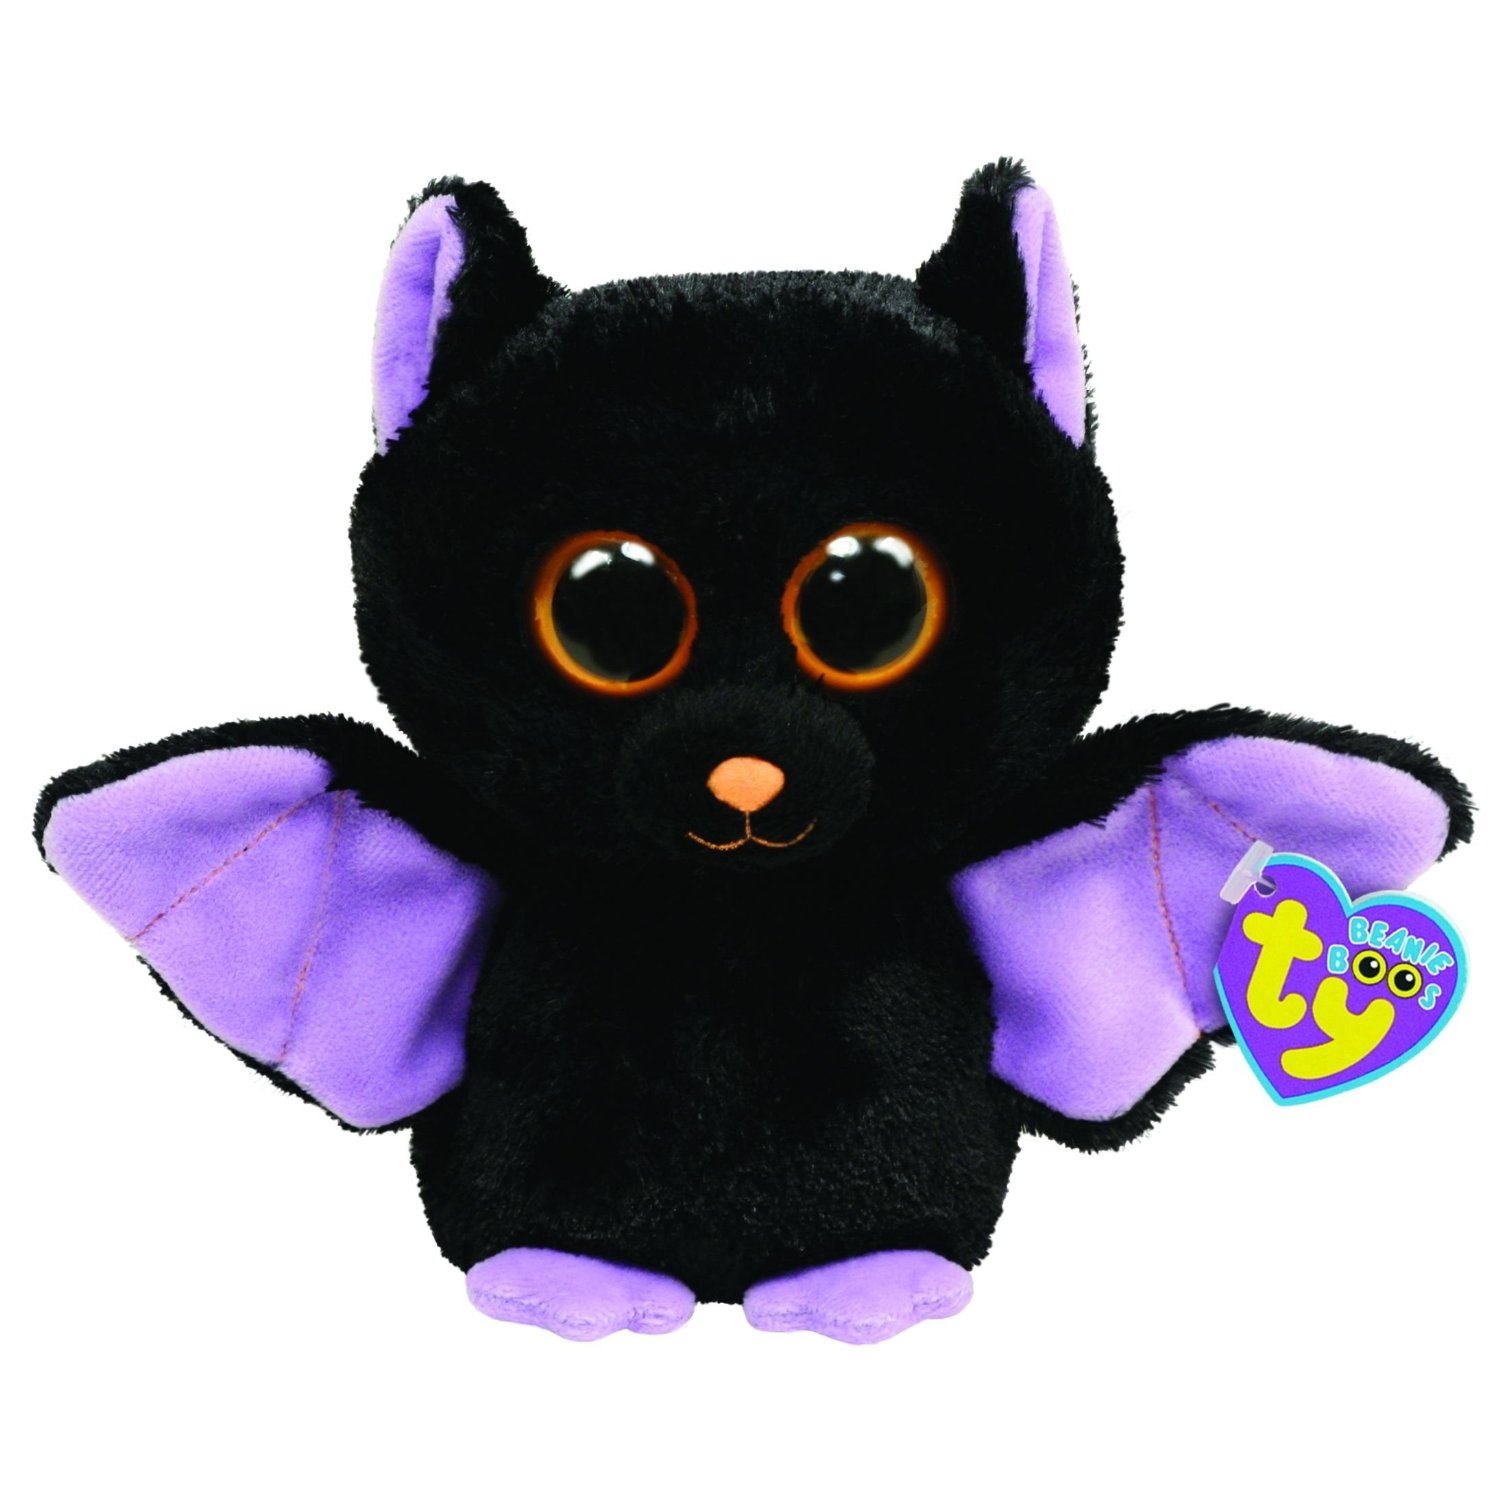 99109fbdf9d Ty Beanie Boos Swoops - Bat by TY Beanie Boos - Shop Online for Toys in  Australia